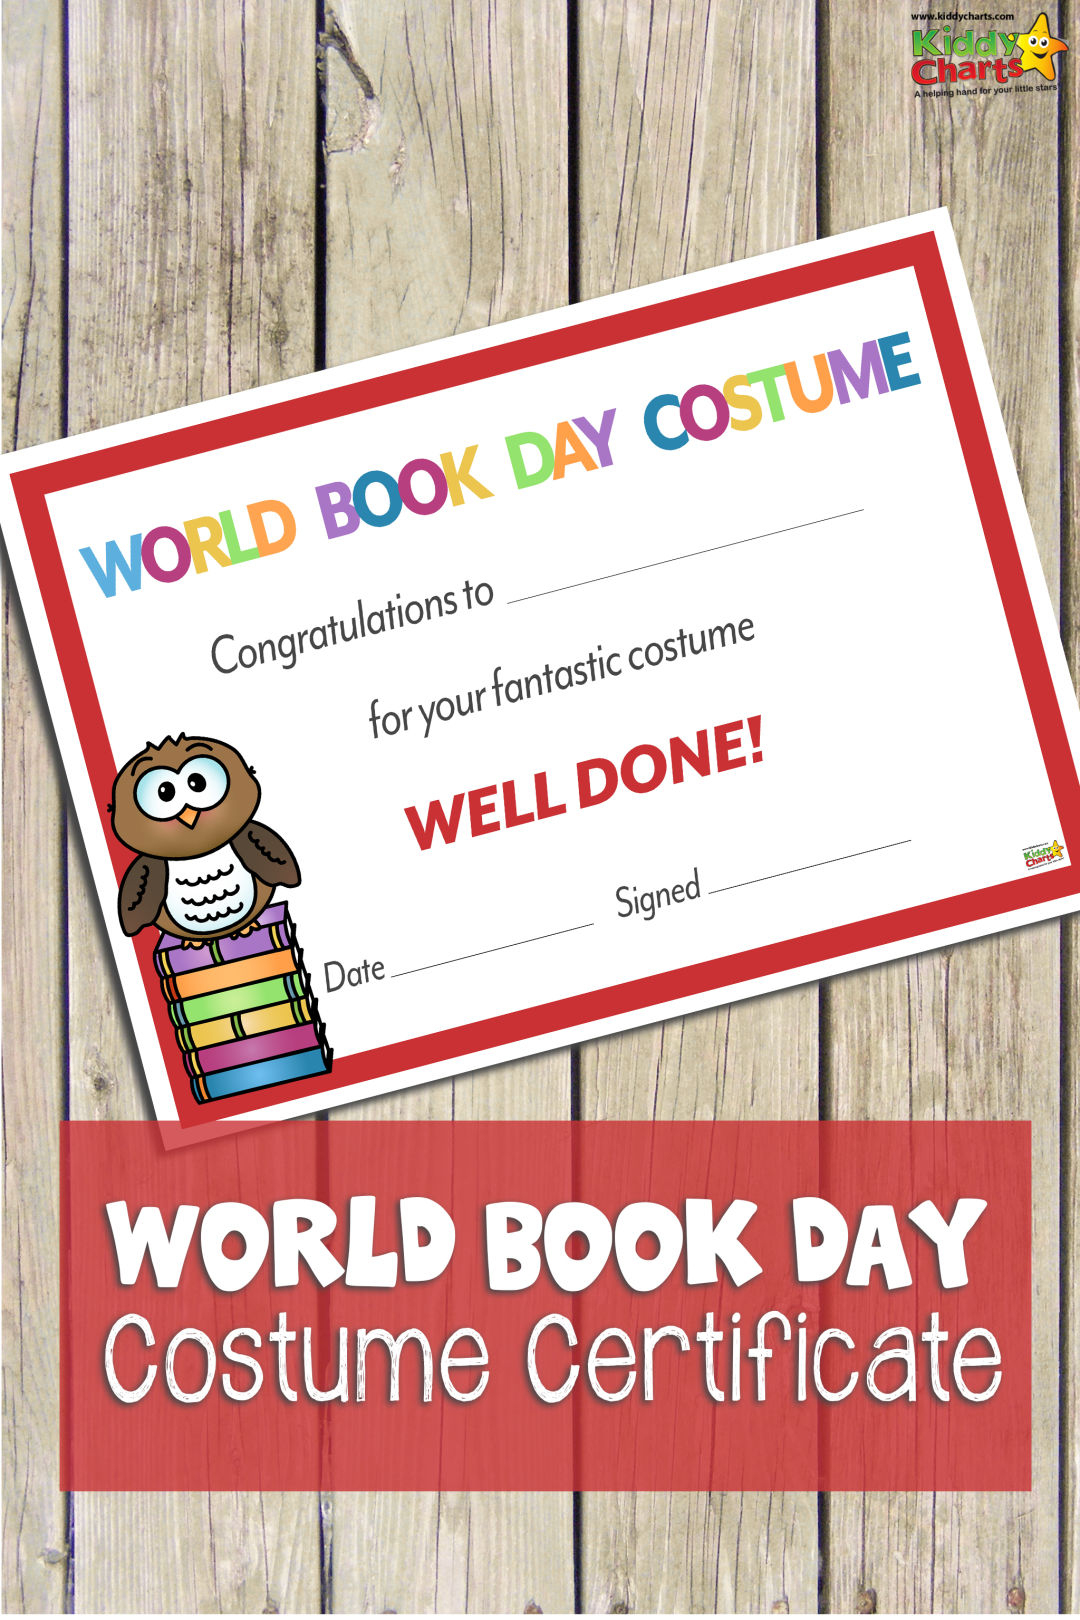 World Book Day Certificate: Best Costume - Best Costume Certificate Printable Free